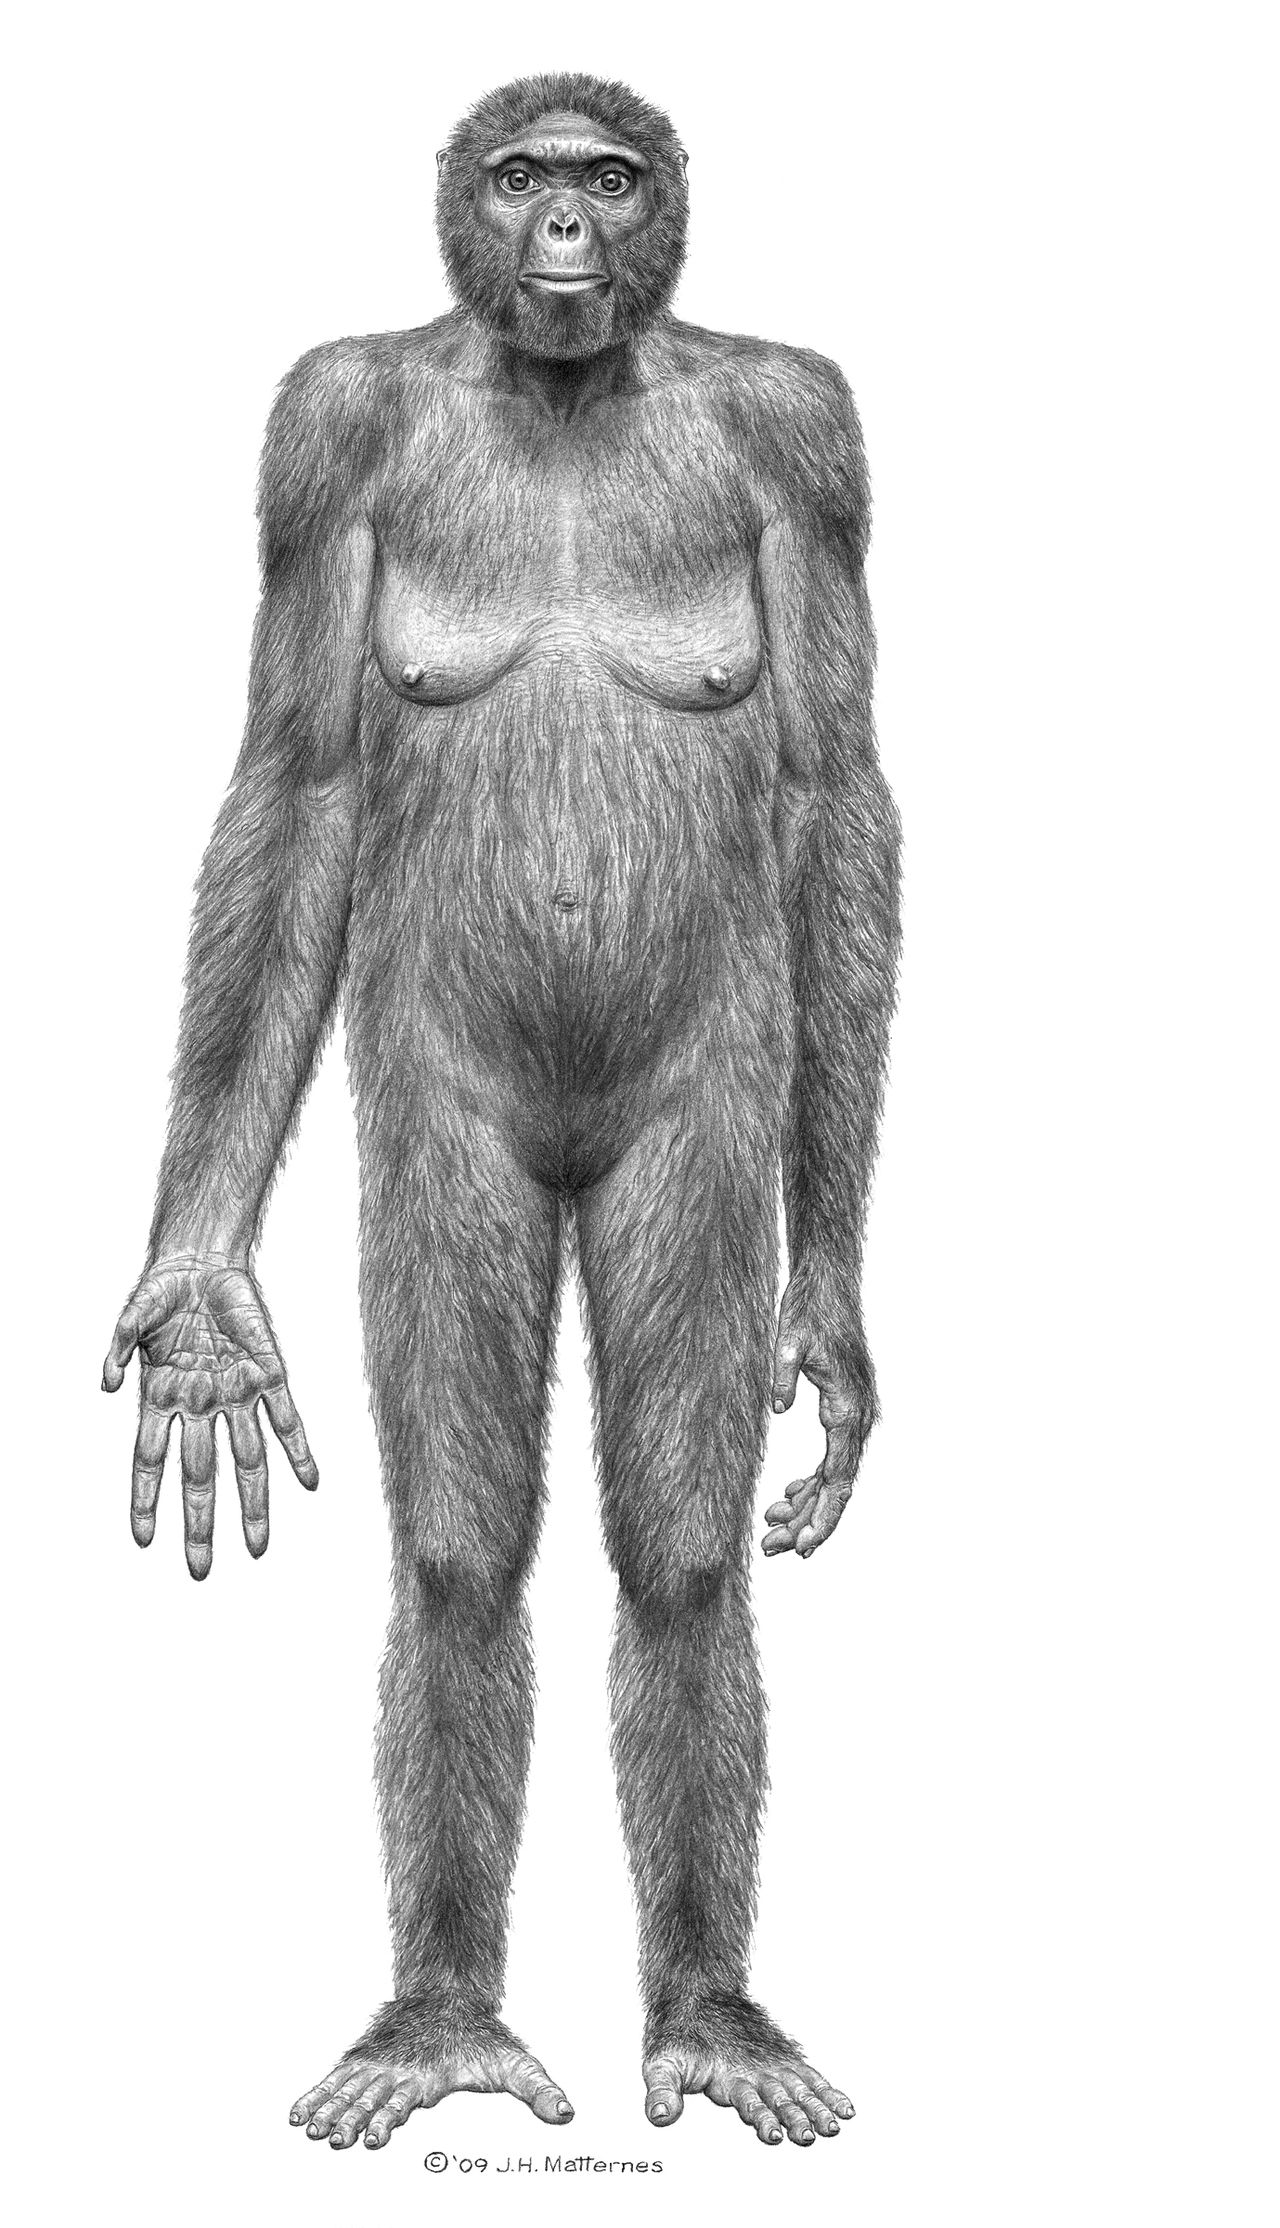 """This image released October 1, 2009 by """"Science"""" shows the probable life appearance in anterior view of Ardipithecuss ramidus(""""Ardi""""). In a special issue of Science, an international team of scientists has for the first time thoroughly described Ardipithecus ramidus, a hominid species that lived 4.4 million years ago in what is now Ethiopia. This research, in the form of 11 detailed papers and more general summaries, will appear in the journal?s October 2, 2009 issue. AFP PHOTO/HO/SCIENCE/J.H. Mattemes = RESTRICTED TO EDITORIAL USE = No ARCHIVES ="""